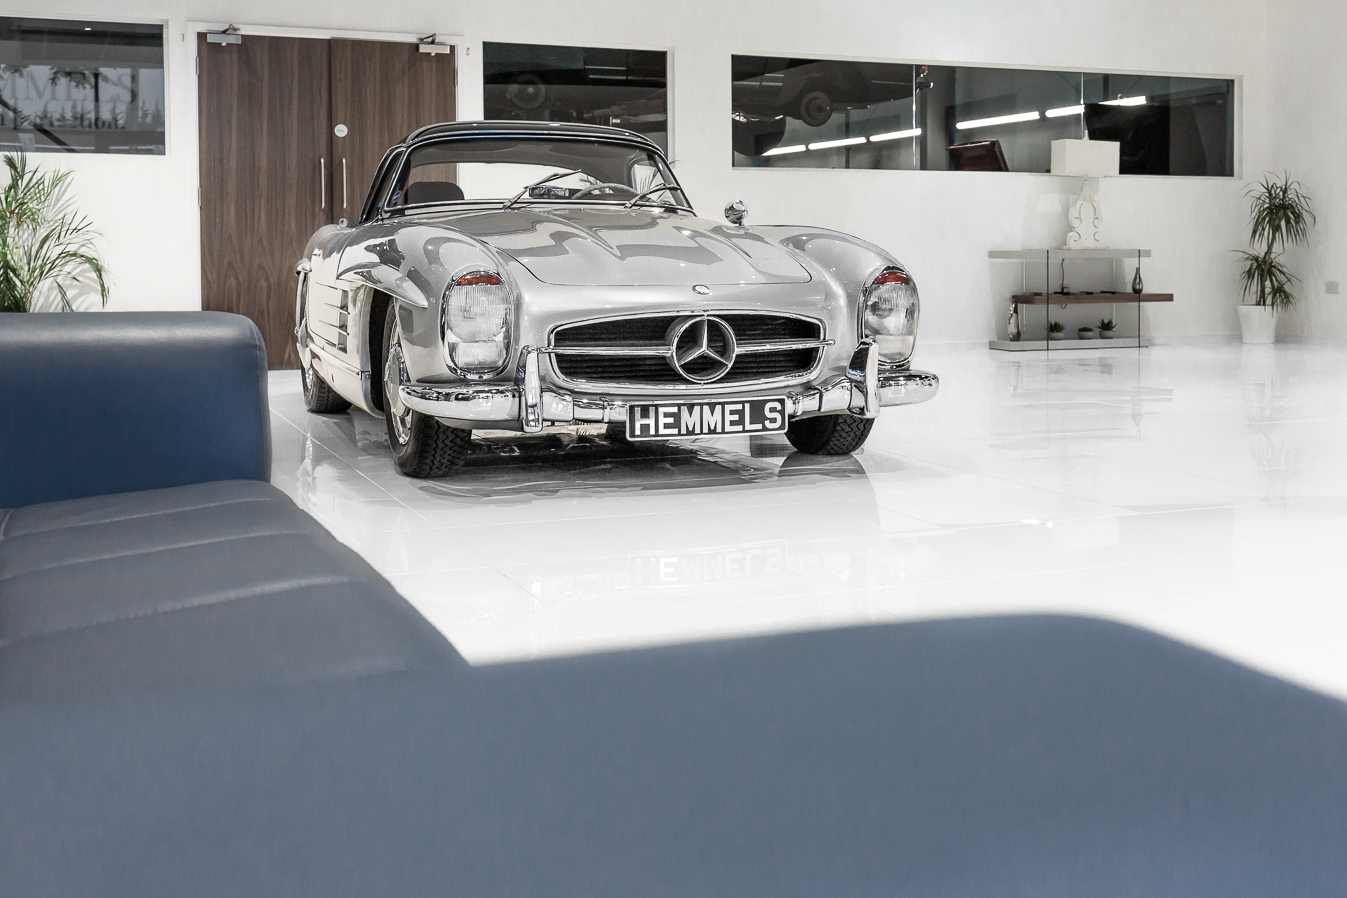 Silver Mercedes-Benz 300SL Roadster in the Hemmels showroom